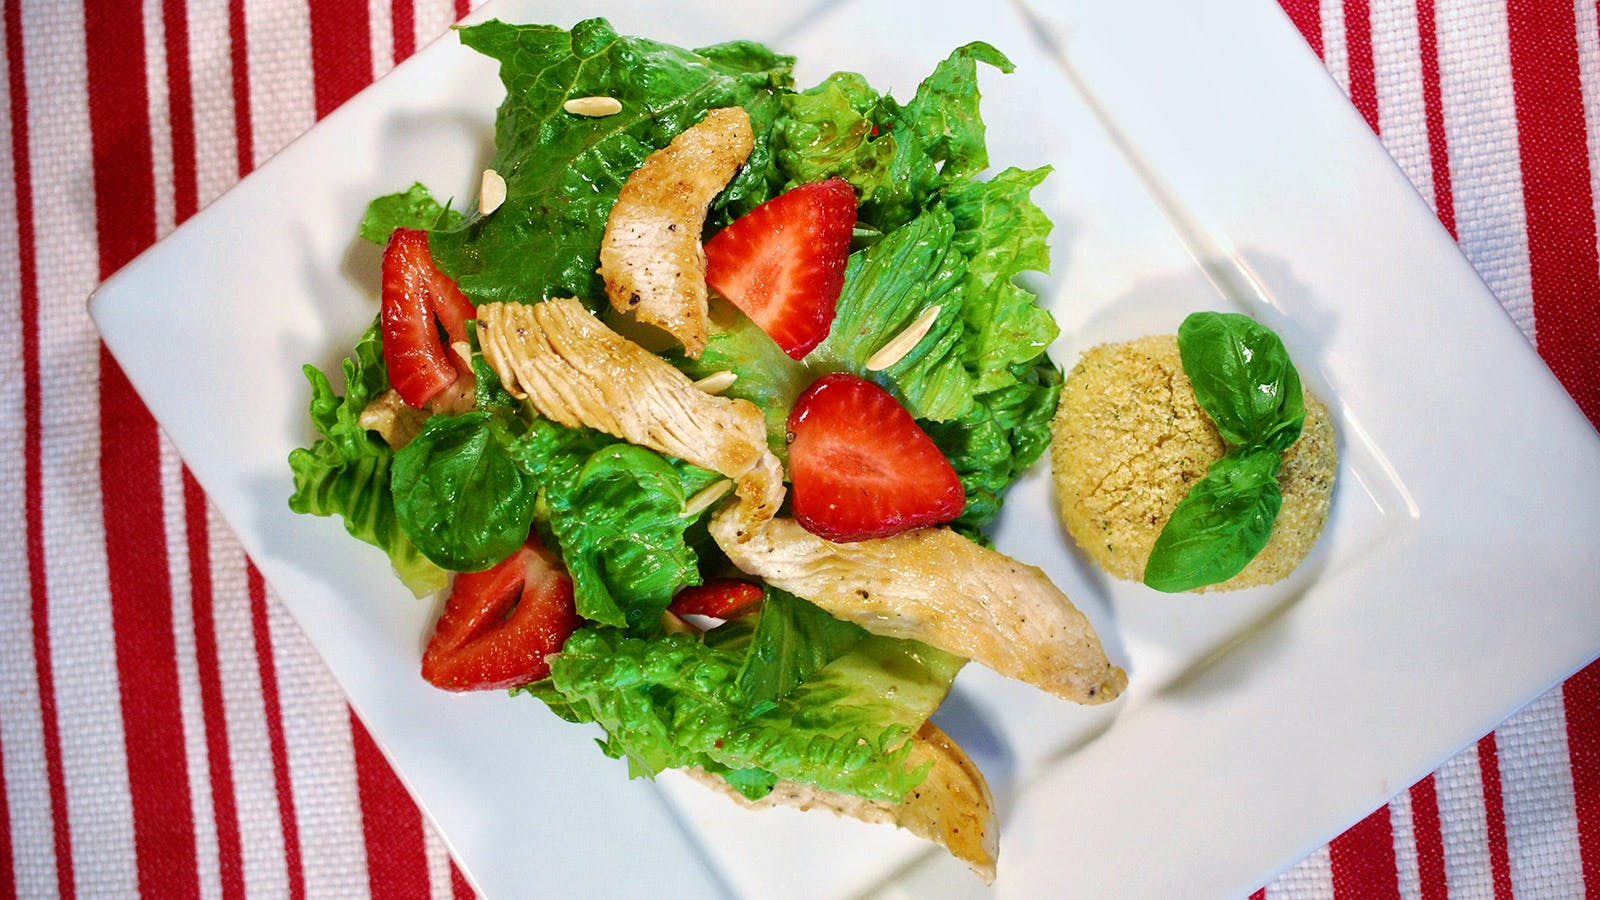 8 & $20: Turkey and Strawberry Salad with Baked Goat Cheese